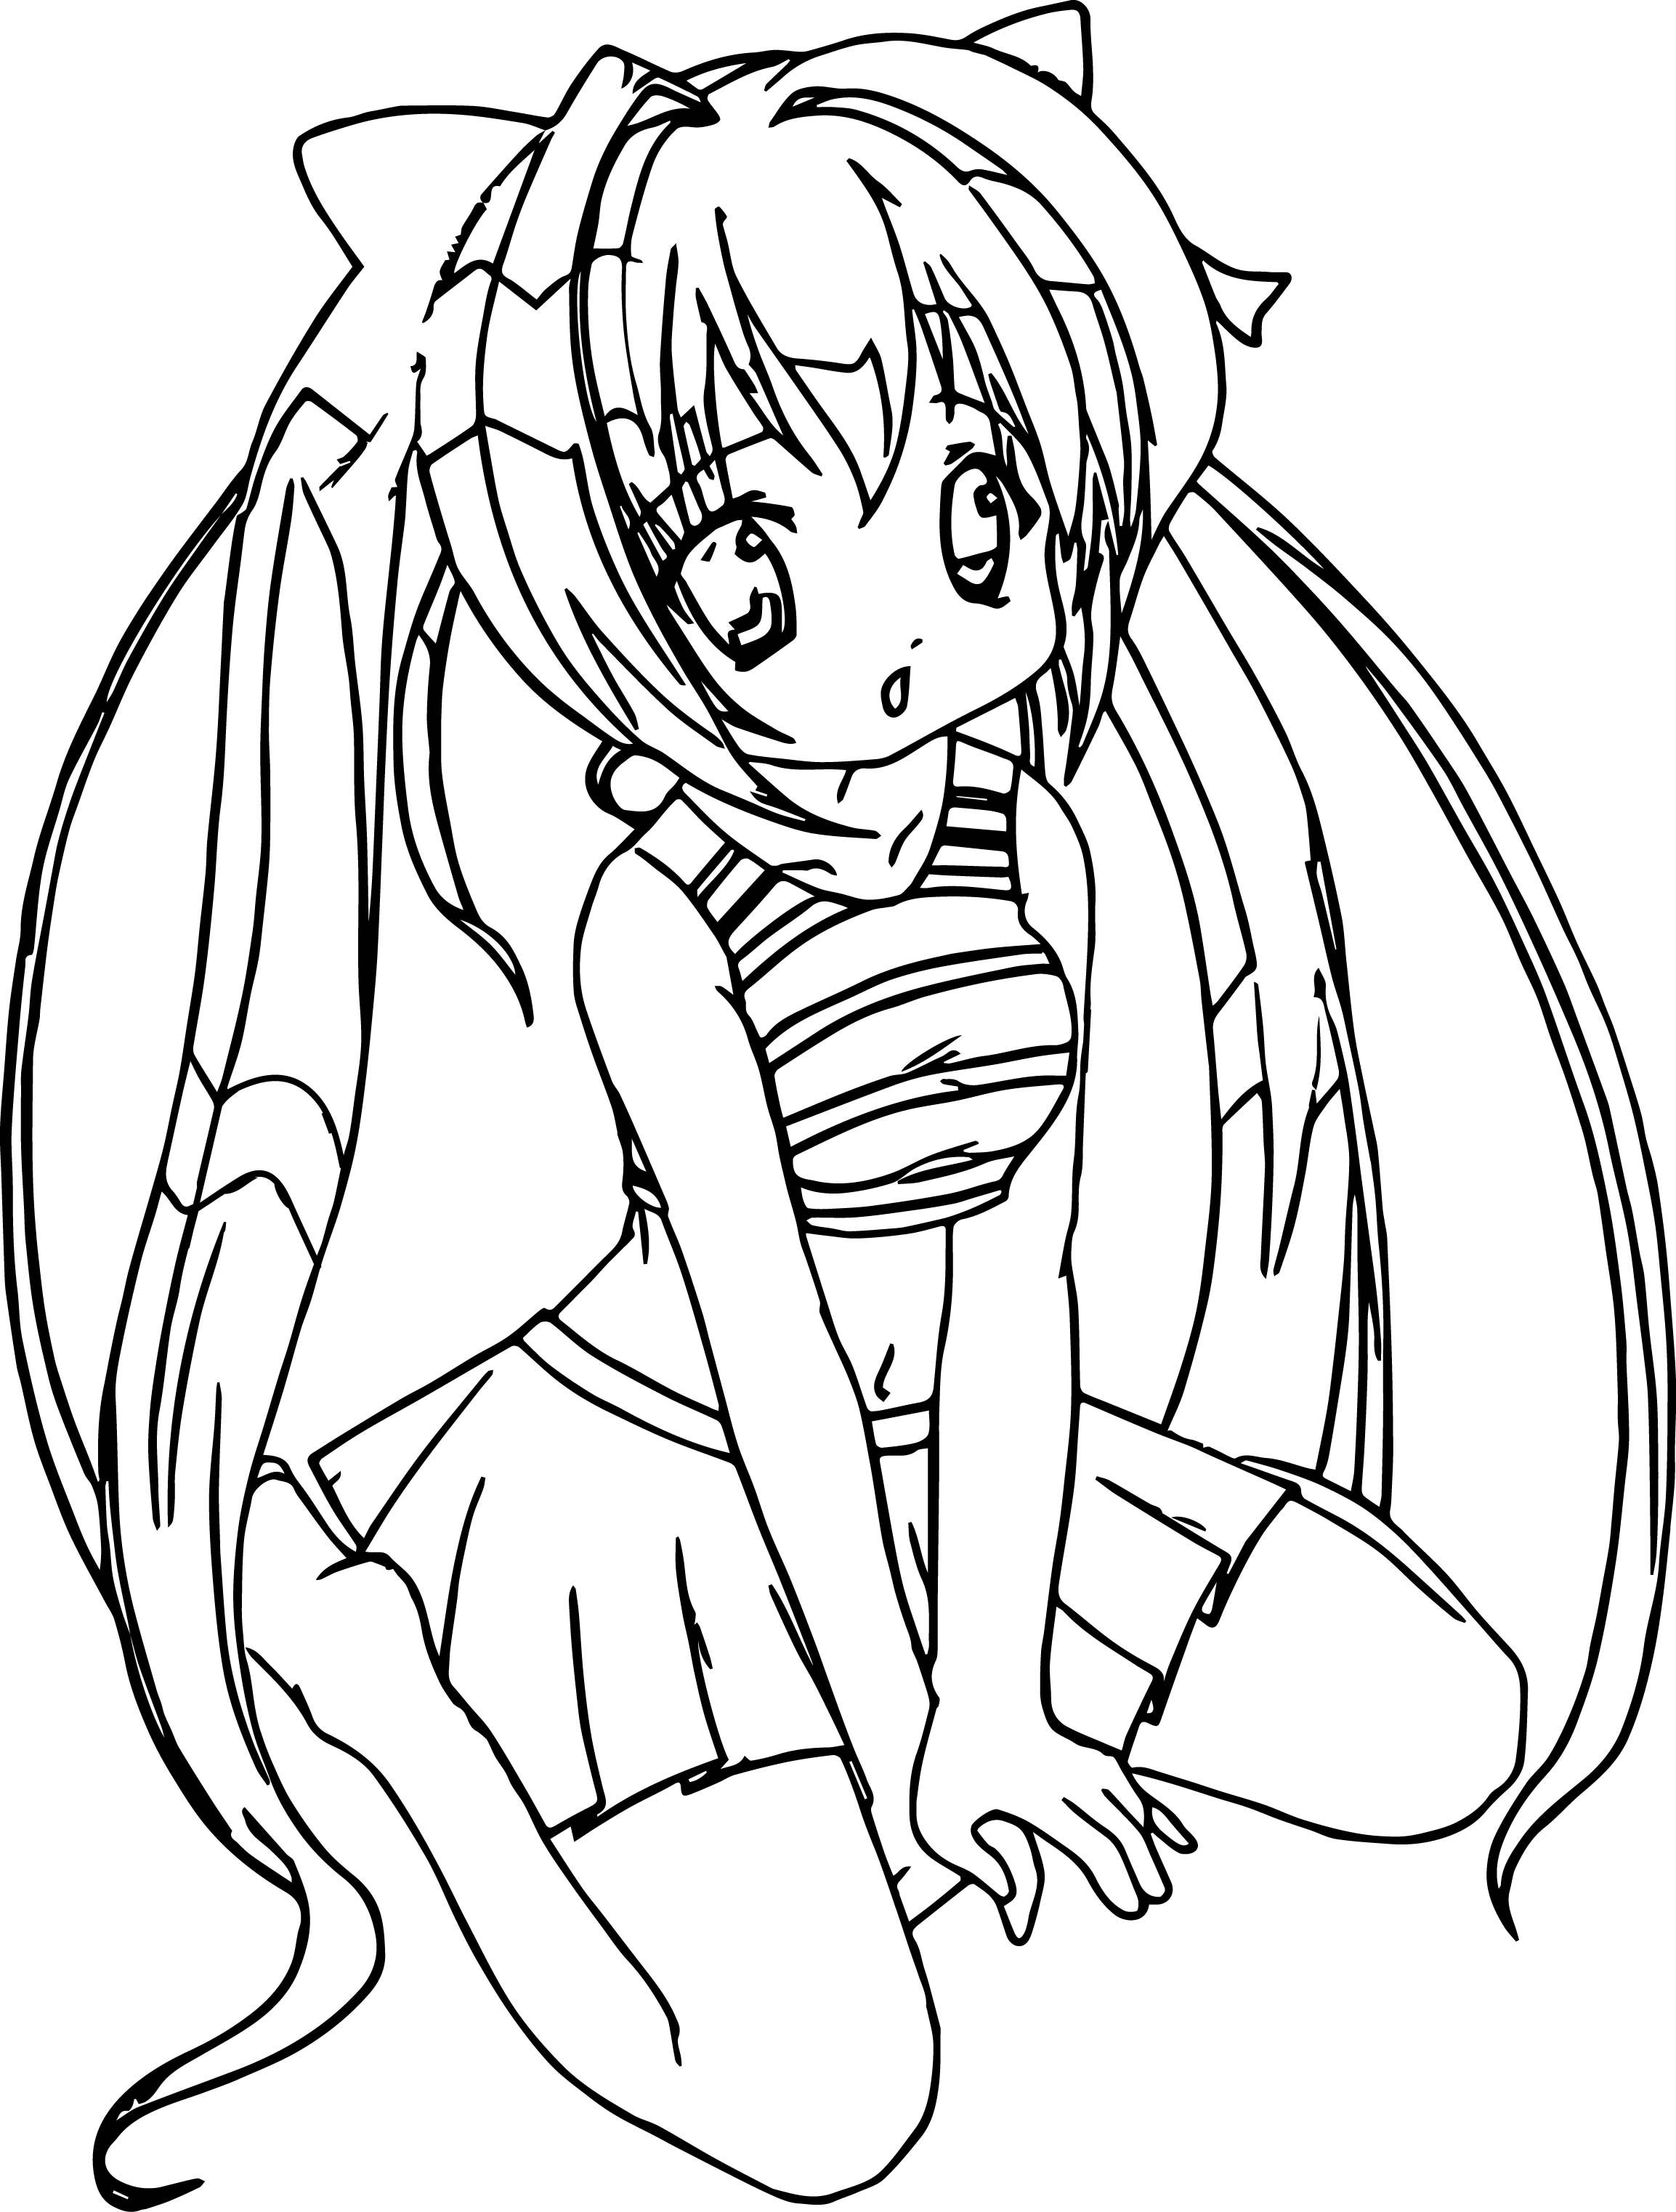 anime coloring pages easy sakura with friend coloring pages for kids printable free easy pages coloring anime